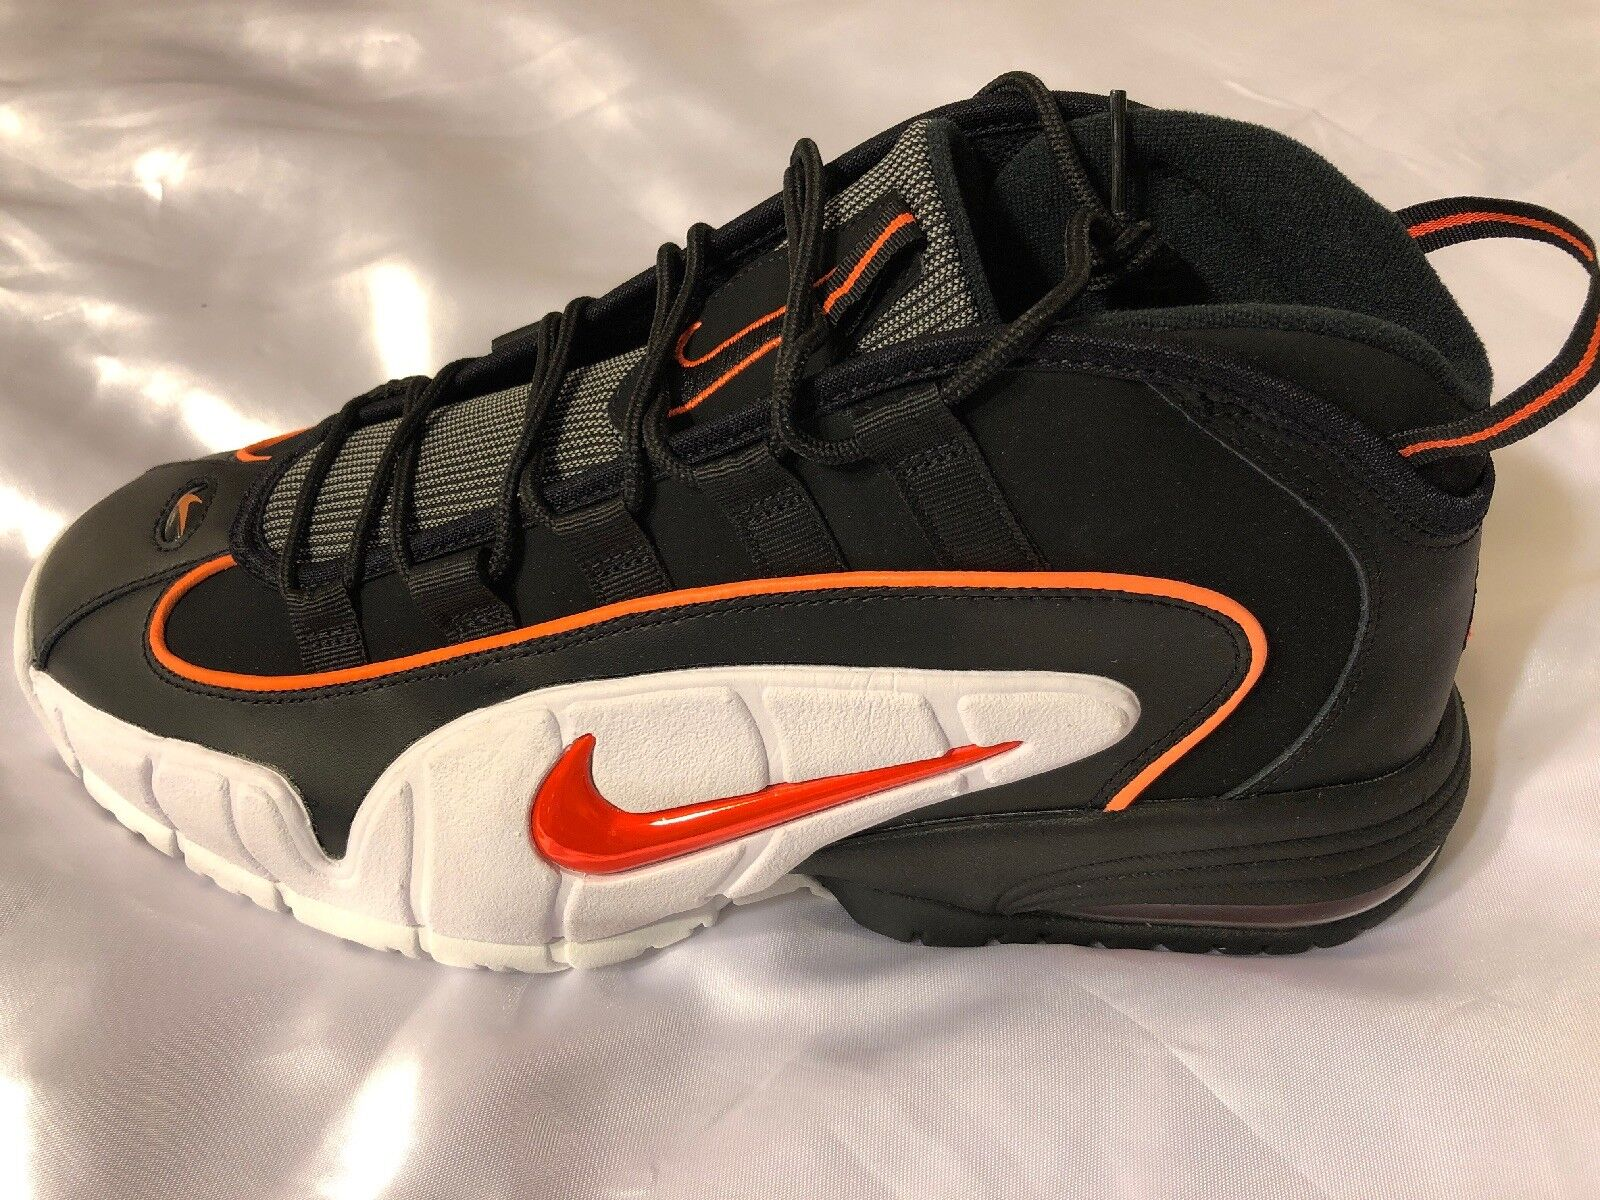 2018 Nike Air Max PENNY Team Red Metallic gold 685153-601 Size 11.5